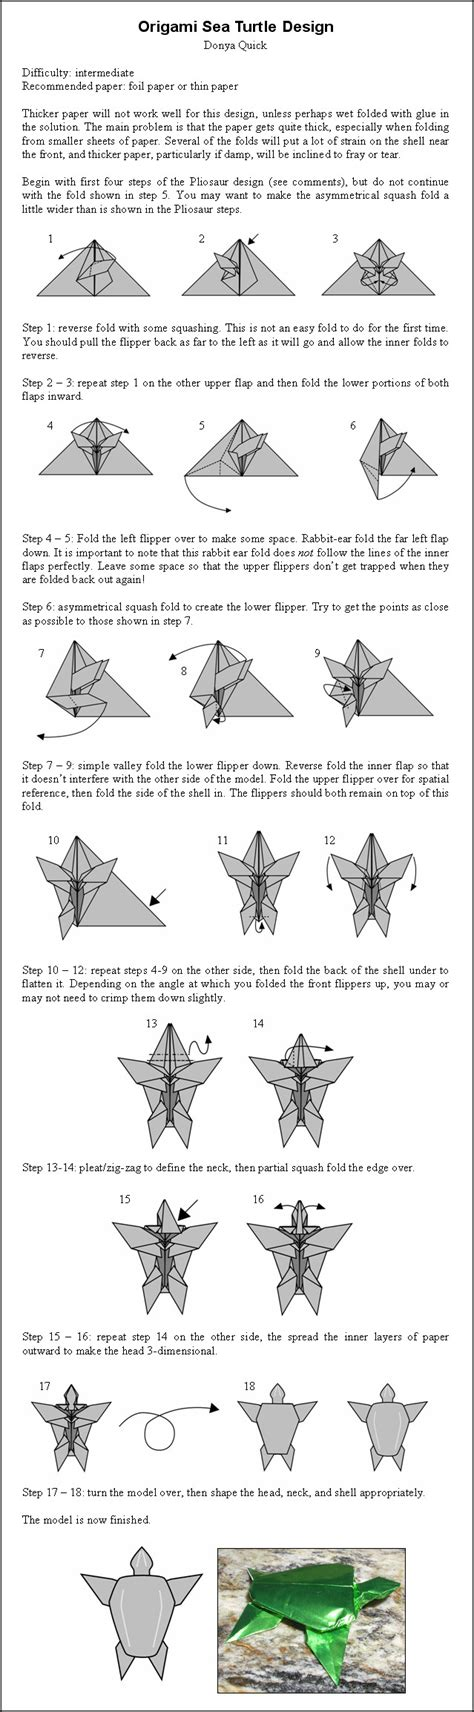 How To Make A Origami Turtle - origami sea turtle instr by donyaquick on deviantart